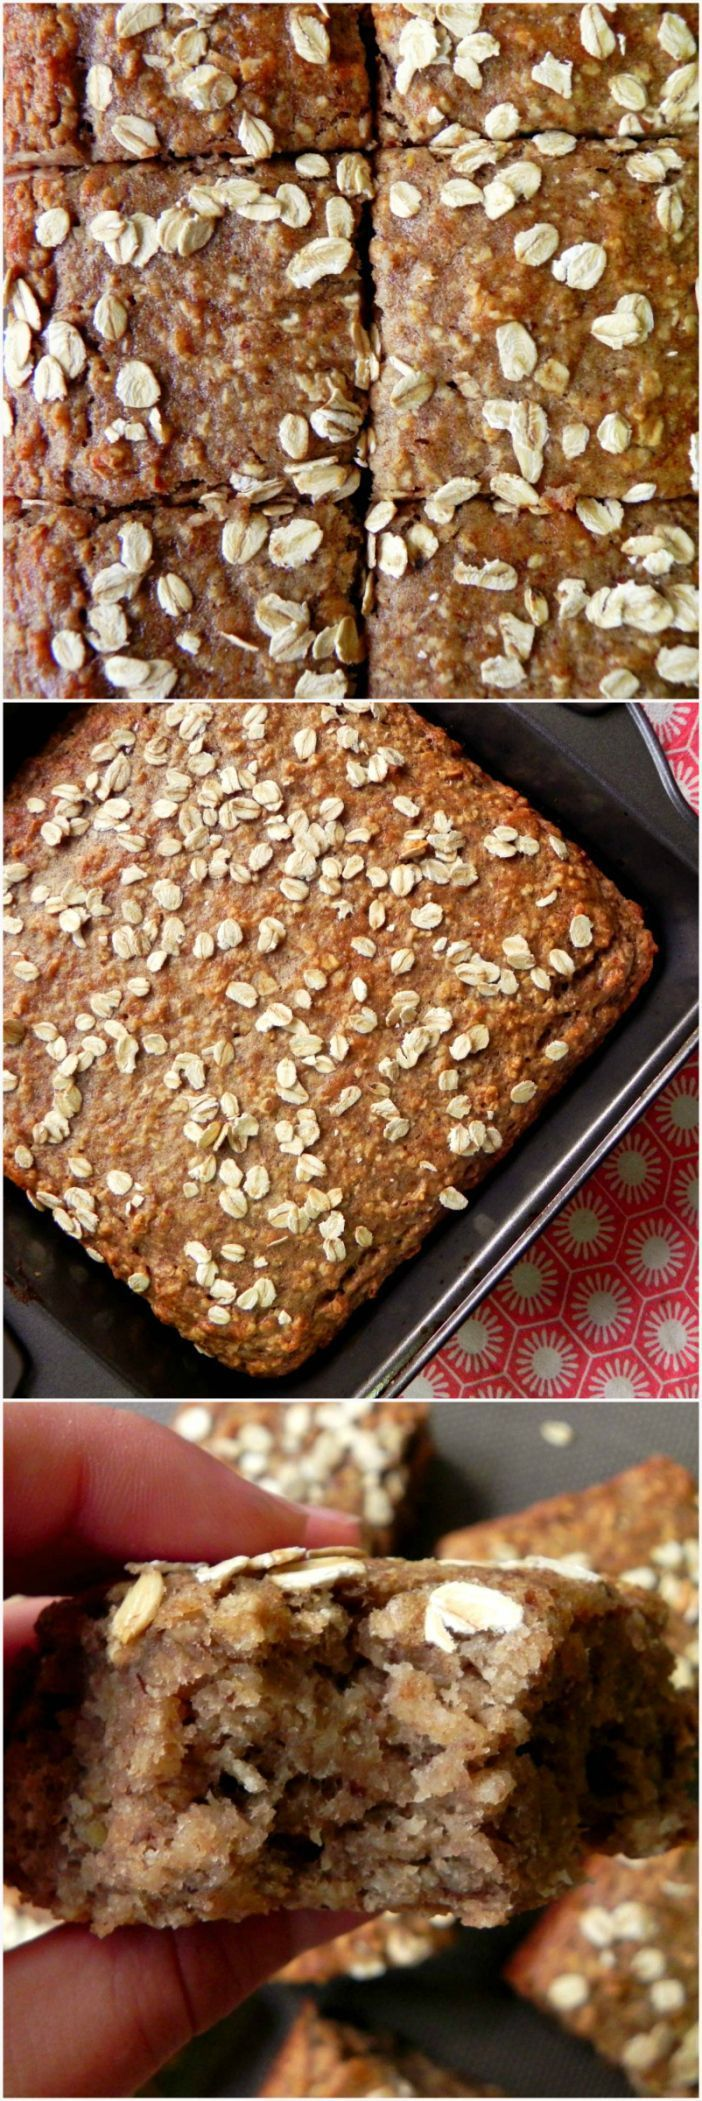 Banana & Oat Breakfast Cake with FIVE bananas! #healthy #vegan #bananabread